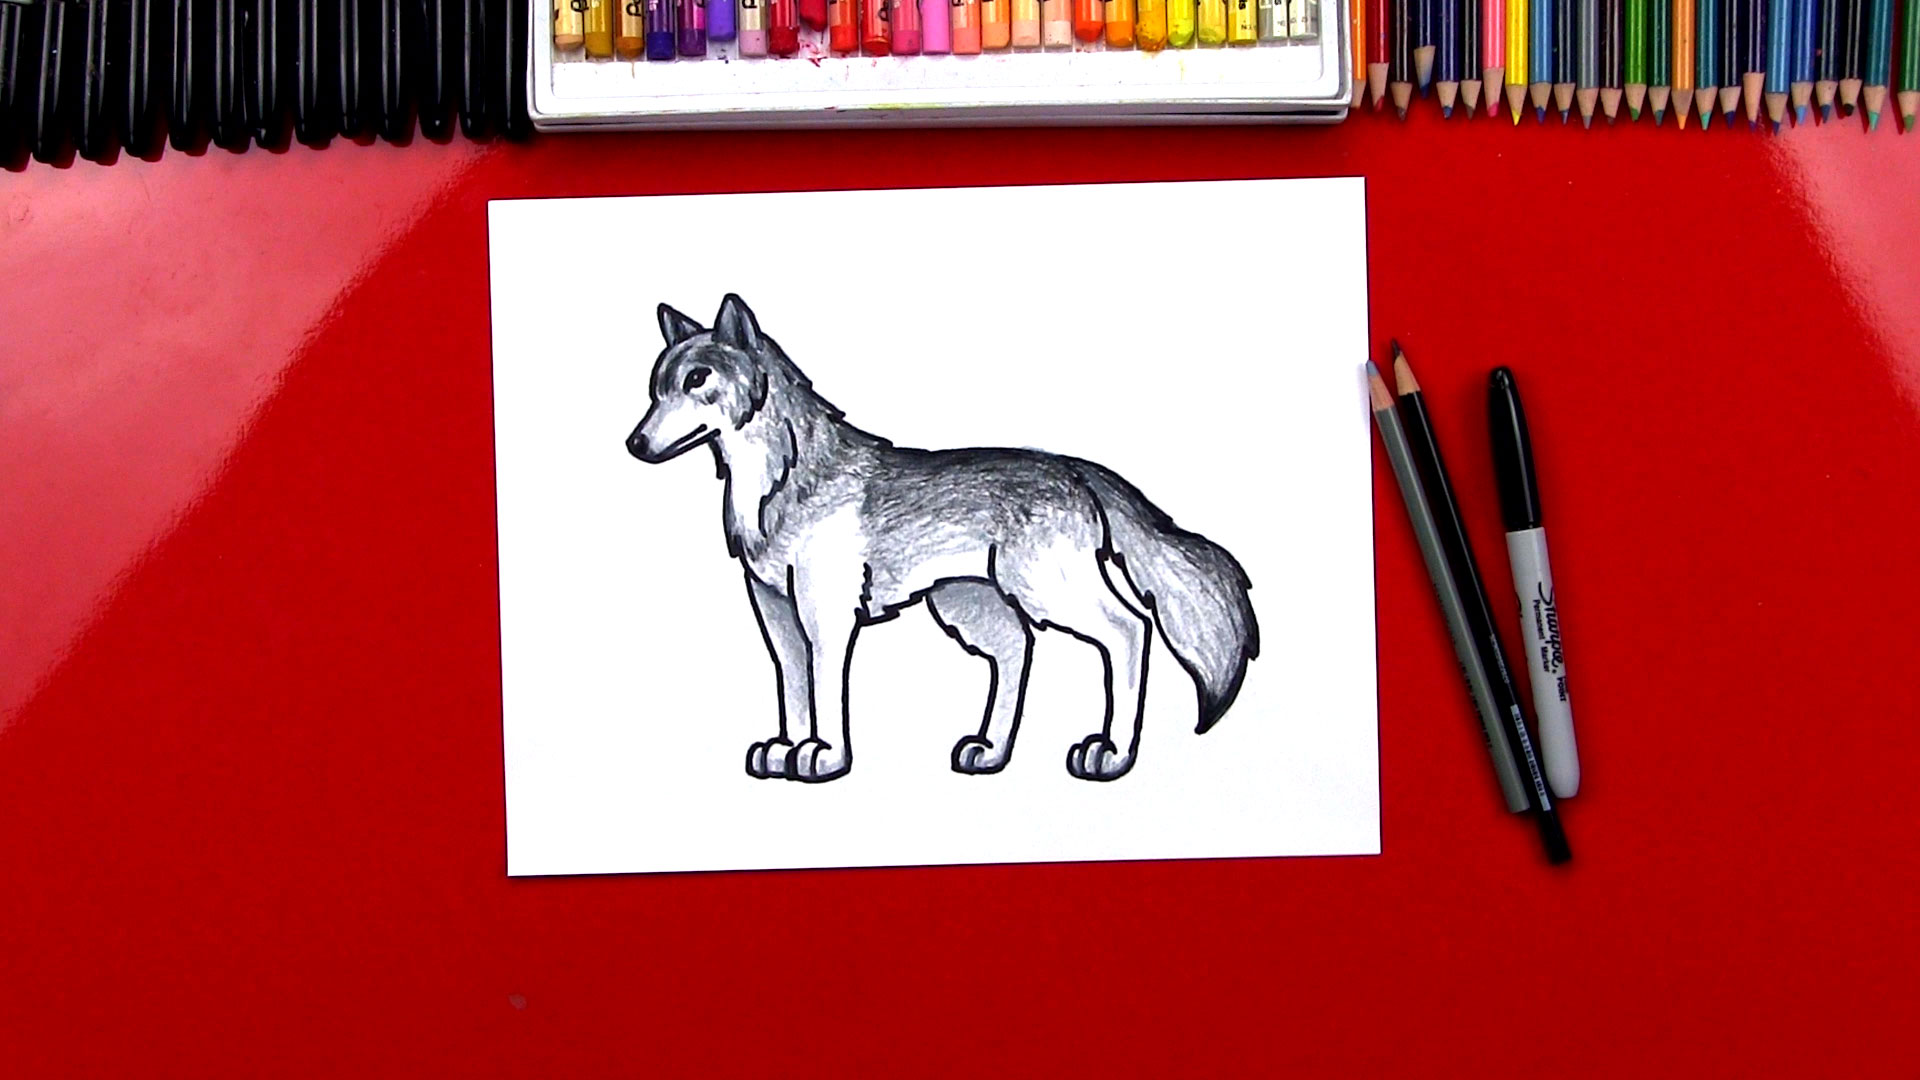 See more ideas about easy drawings, drawings, easy drawings for kids. How To Draw A Realistic Wolf - Art For Kids Hub